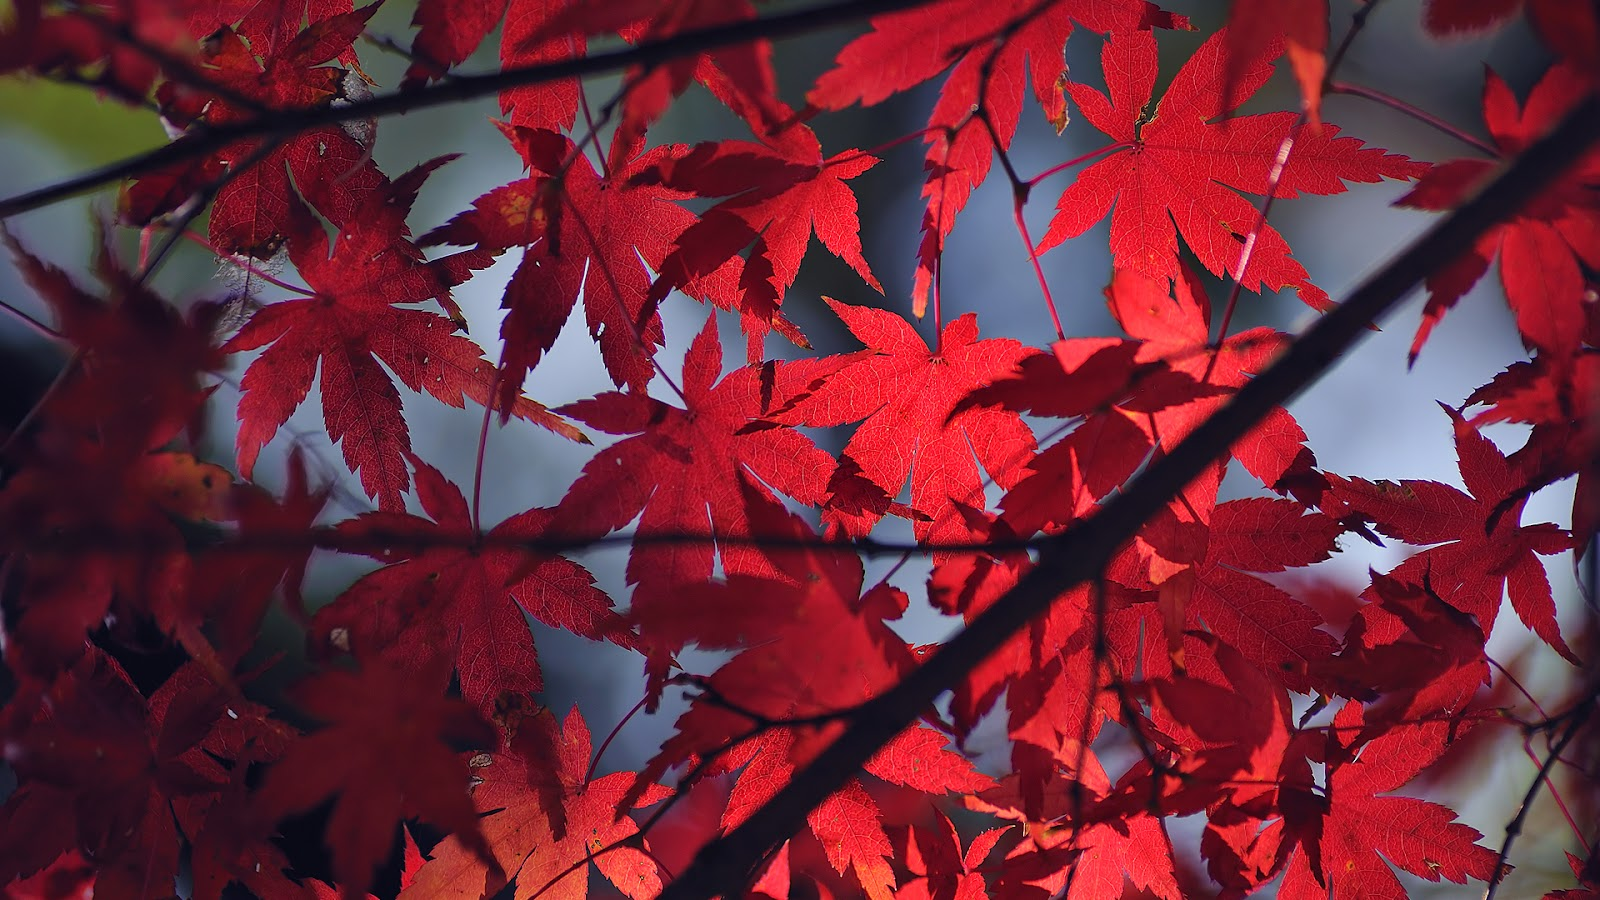 http://2.bp.blogspot.com/-6hk0l8wZVU4/T_WyFQ0jJYI/AAAAAAAACGE/TfnULNiT1tM/s1600/Colored_Leaves_Wallpaper_by_WindyLife.jpg